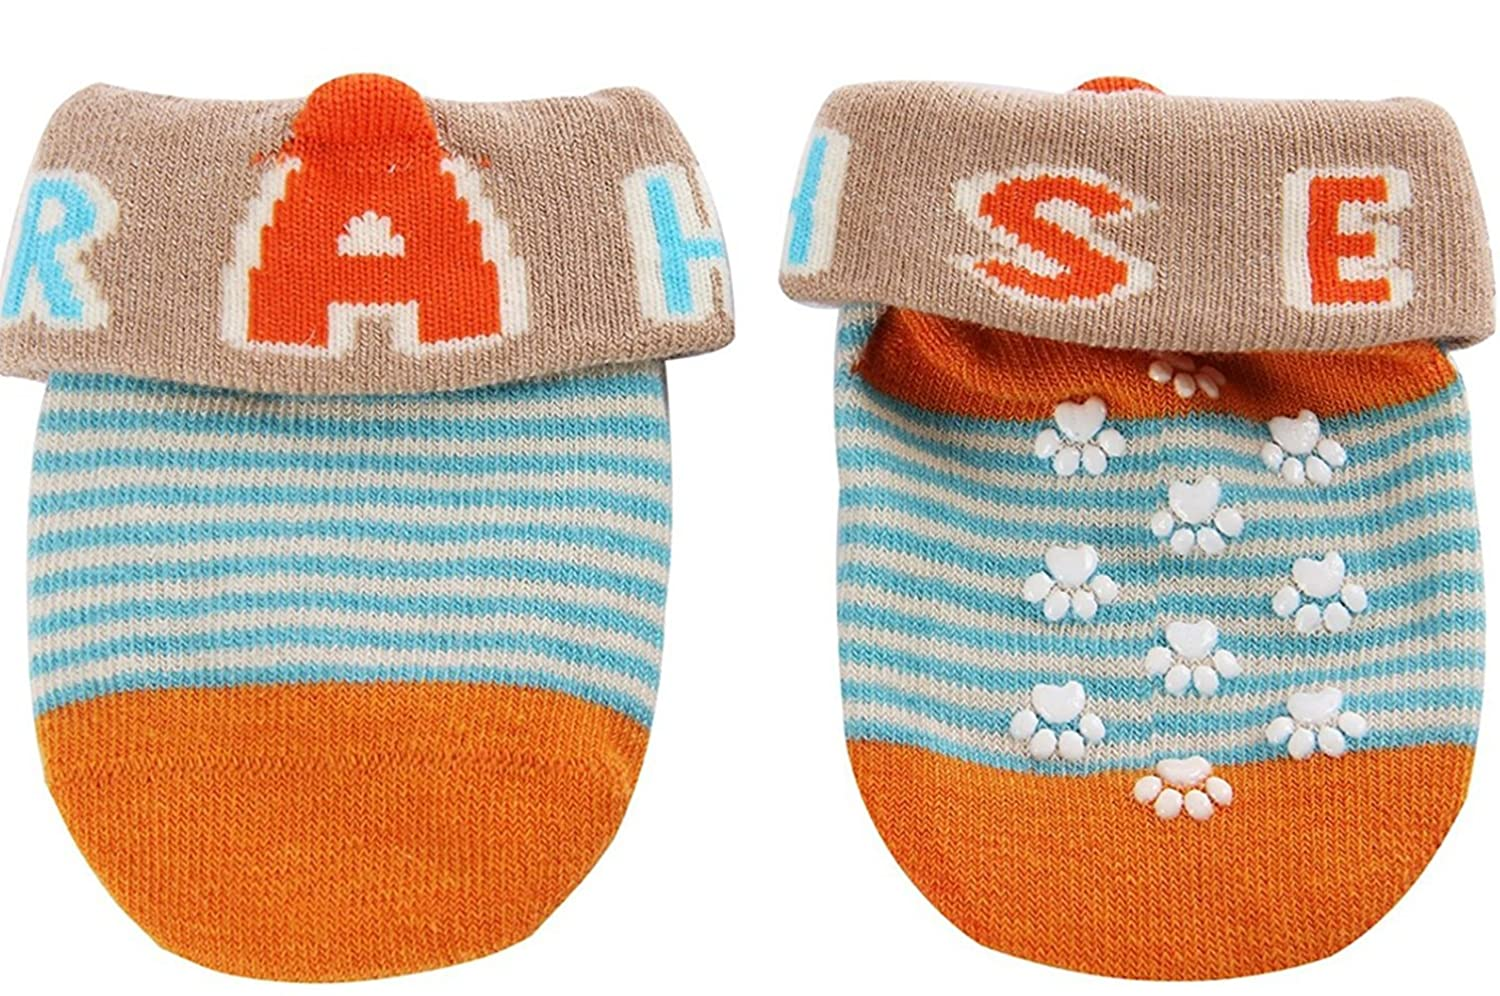 Chickwin 5pairs Non-Skid Anti Slip Newborn Cotton Ankle Sock With Cute Box